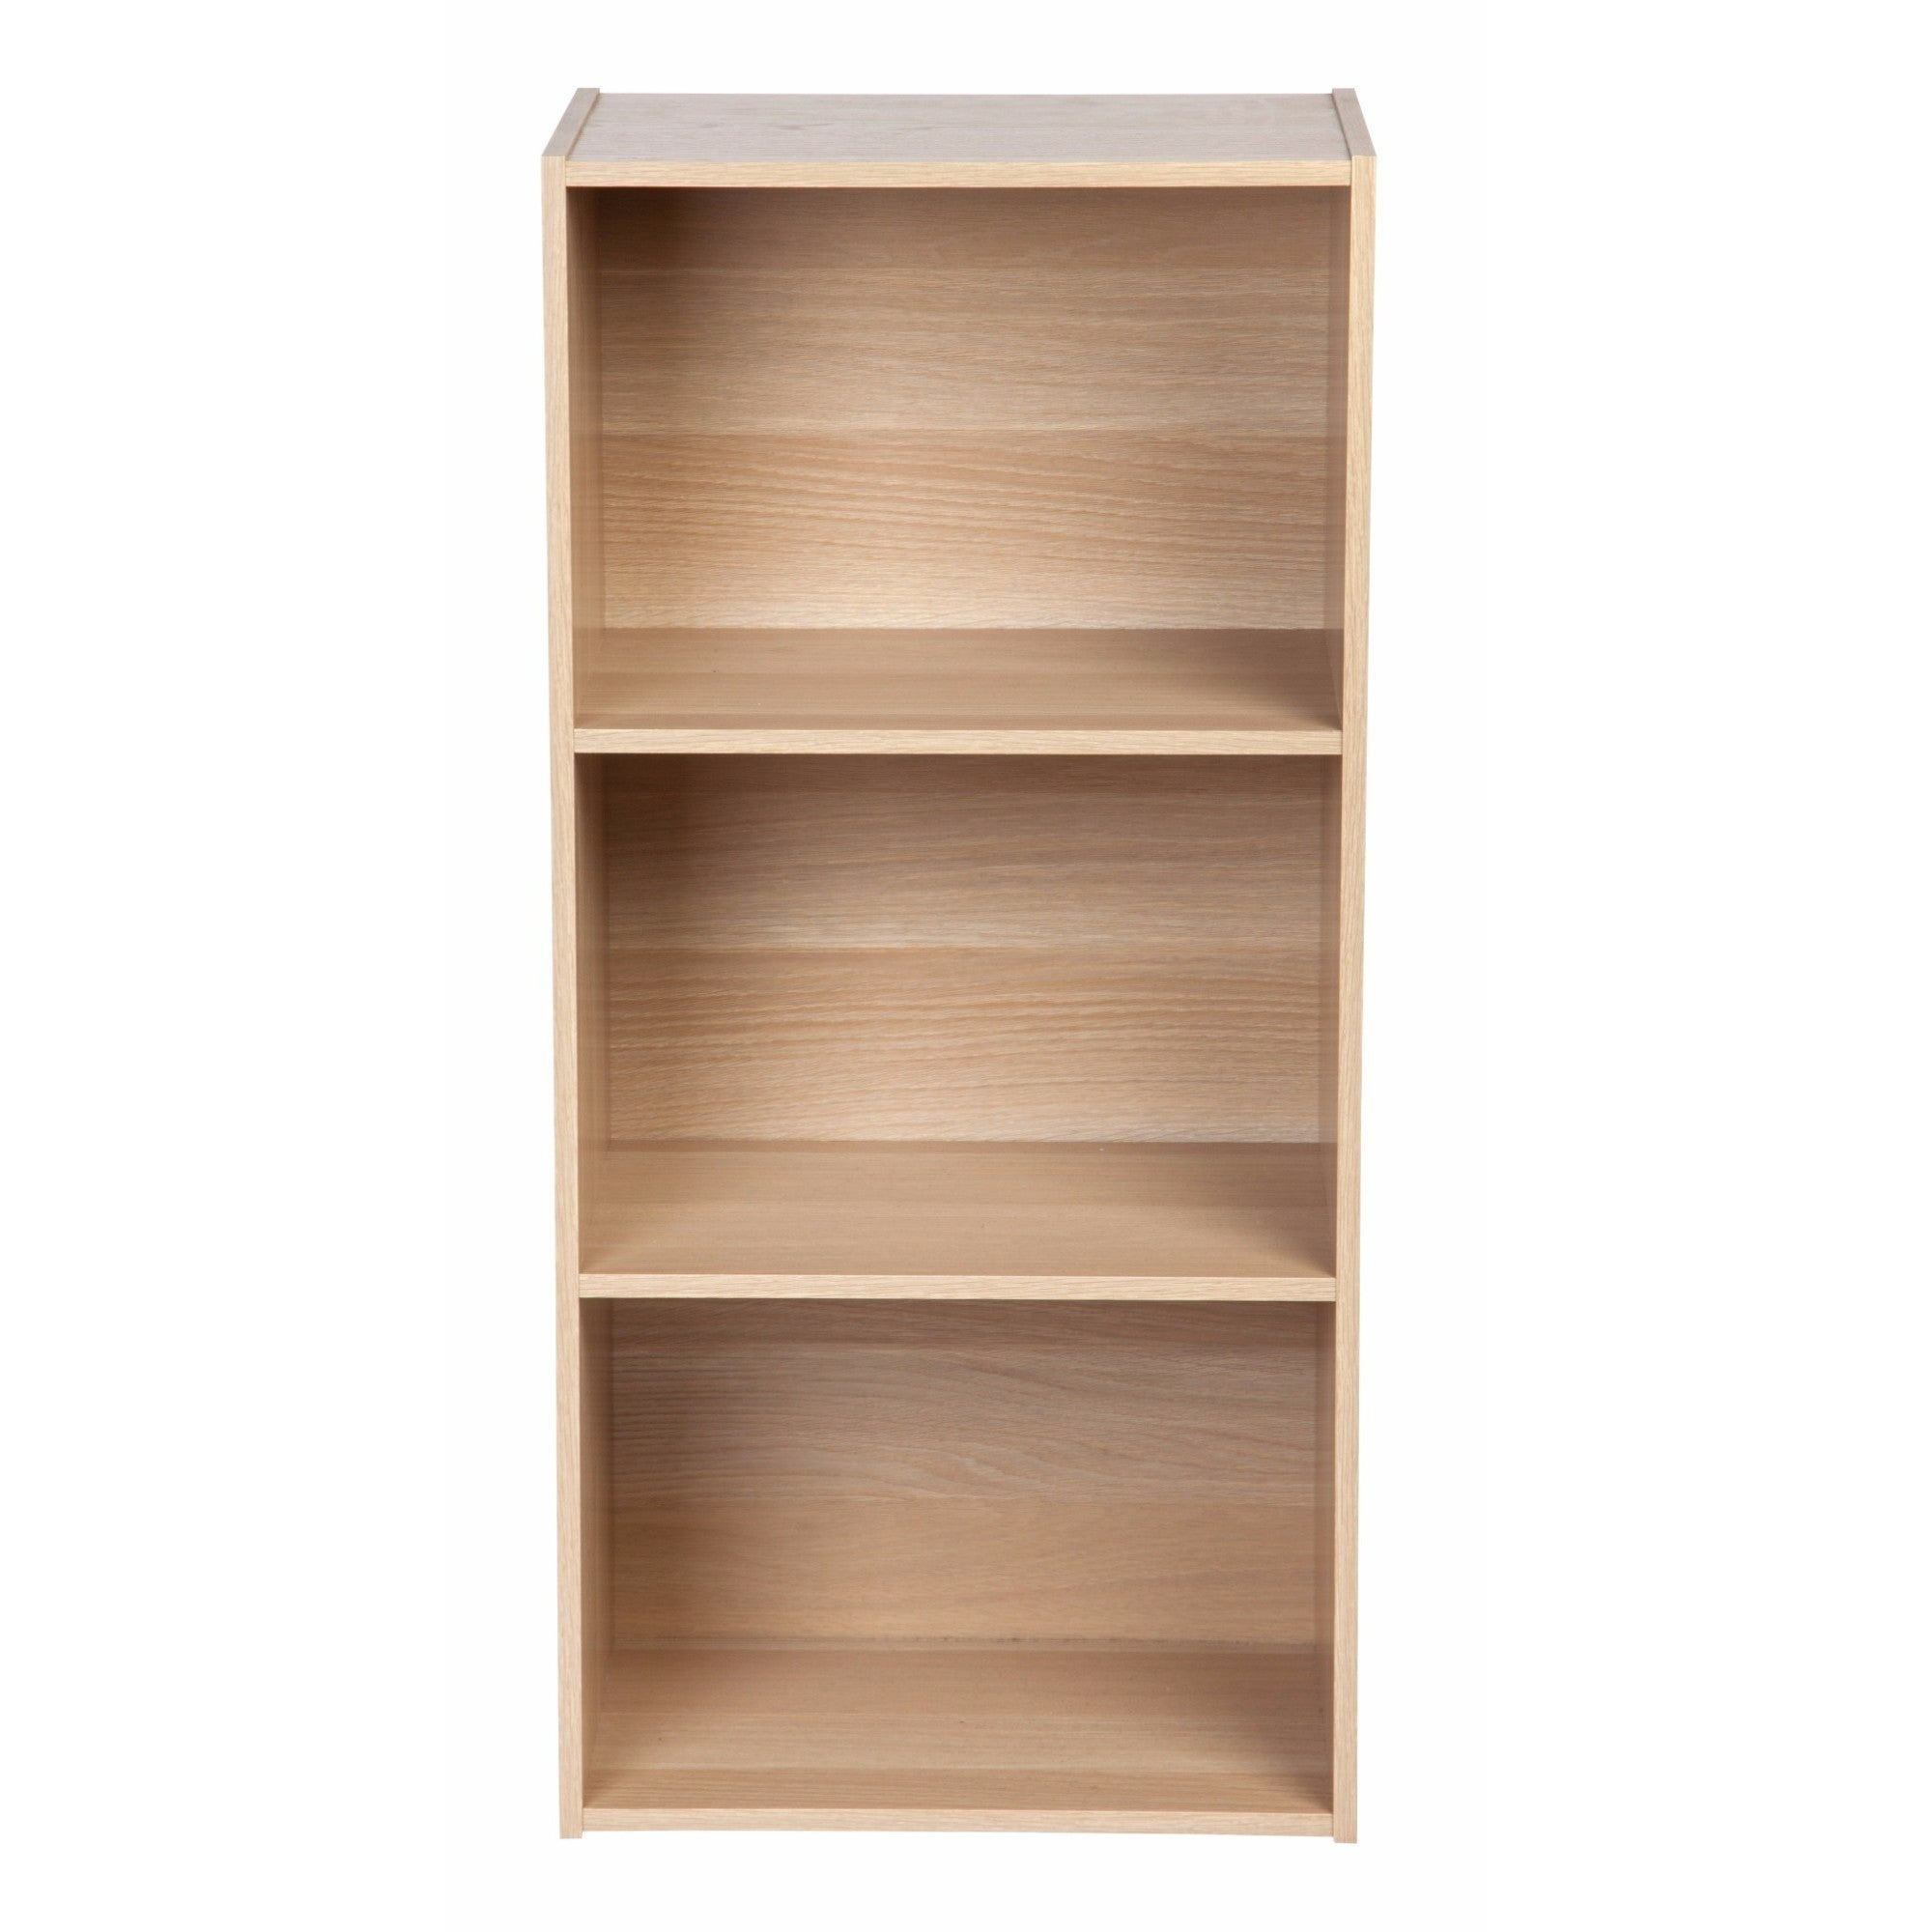 with lighting uncategorized options insid light bookcases bookcase wonderful full extraordinary tv eye striking billy shelves fitted led wall catching alcove strip library of size built in valuable lights